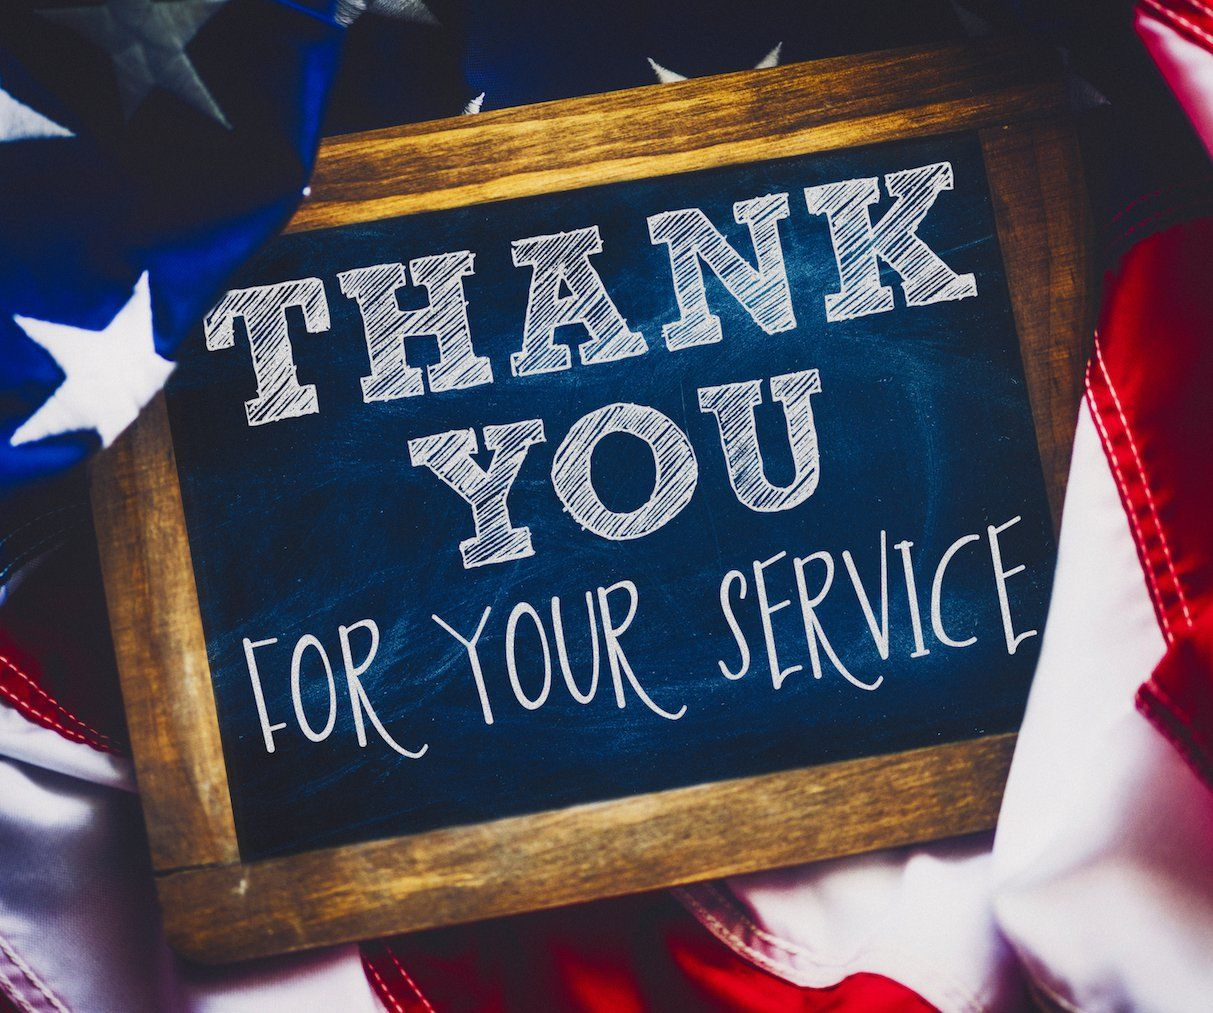 Thank You For Your Service Happy Veterans Day Quotes Veterans Day Quotes Veterans Day Thank You